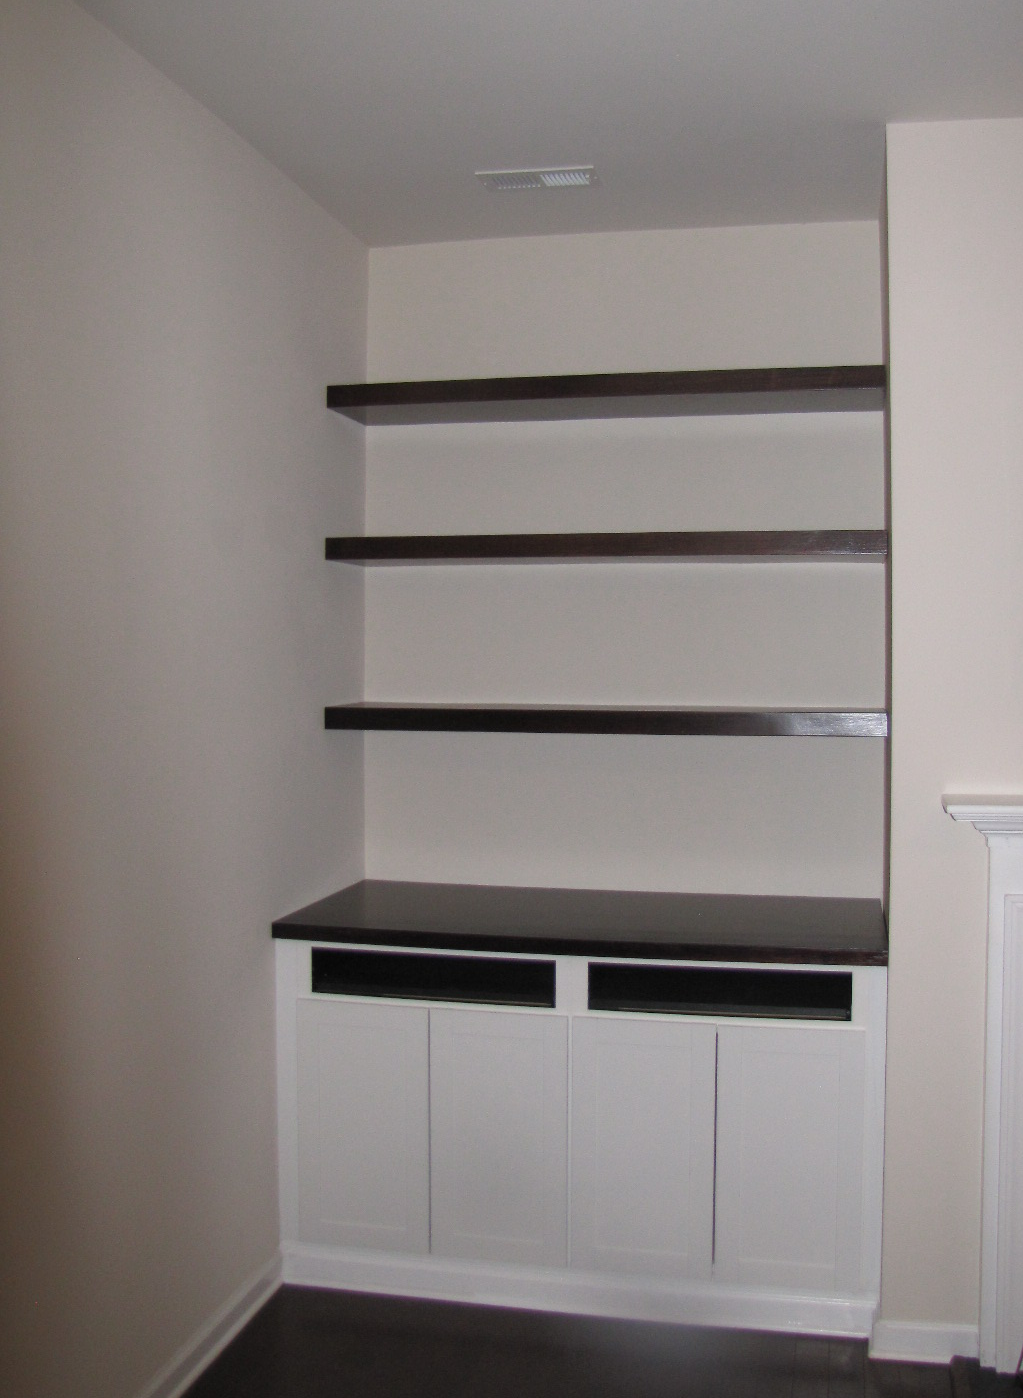 Budget Friendly Built In Bookcases Amp Cabinets In Durham Raleigh Nc